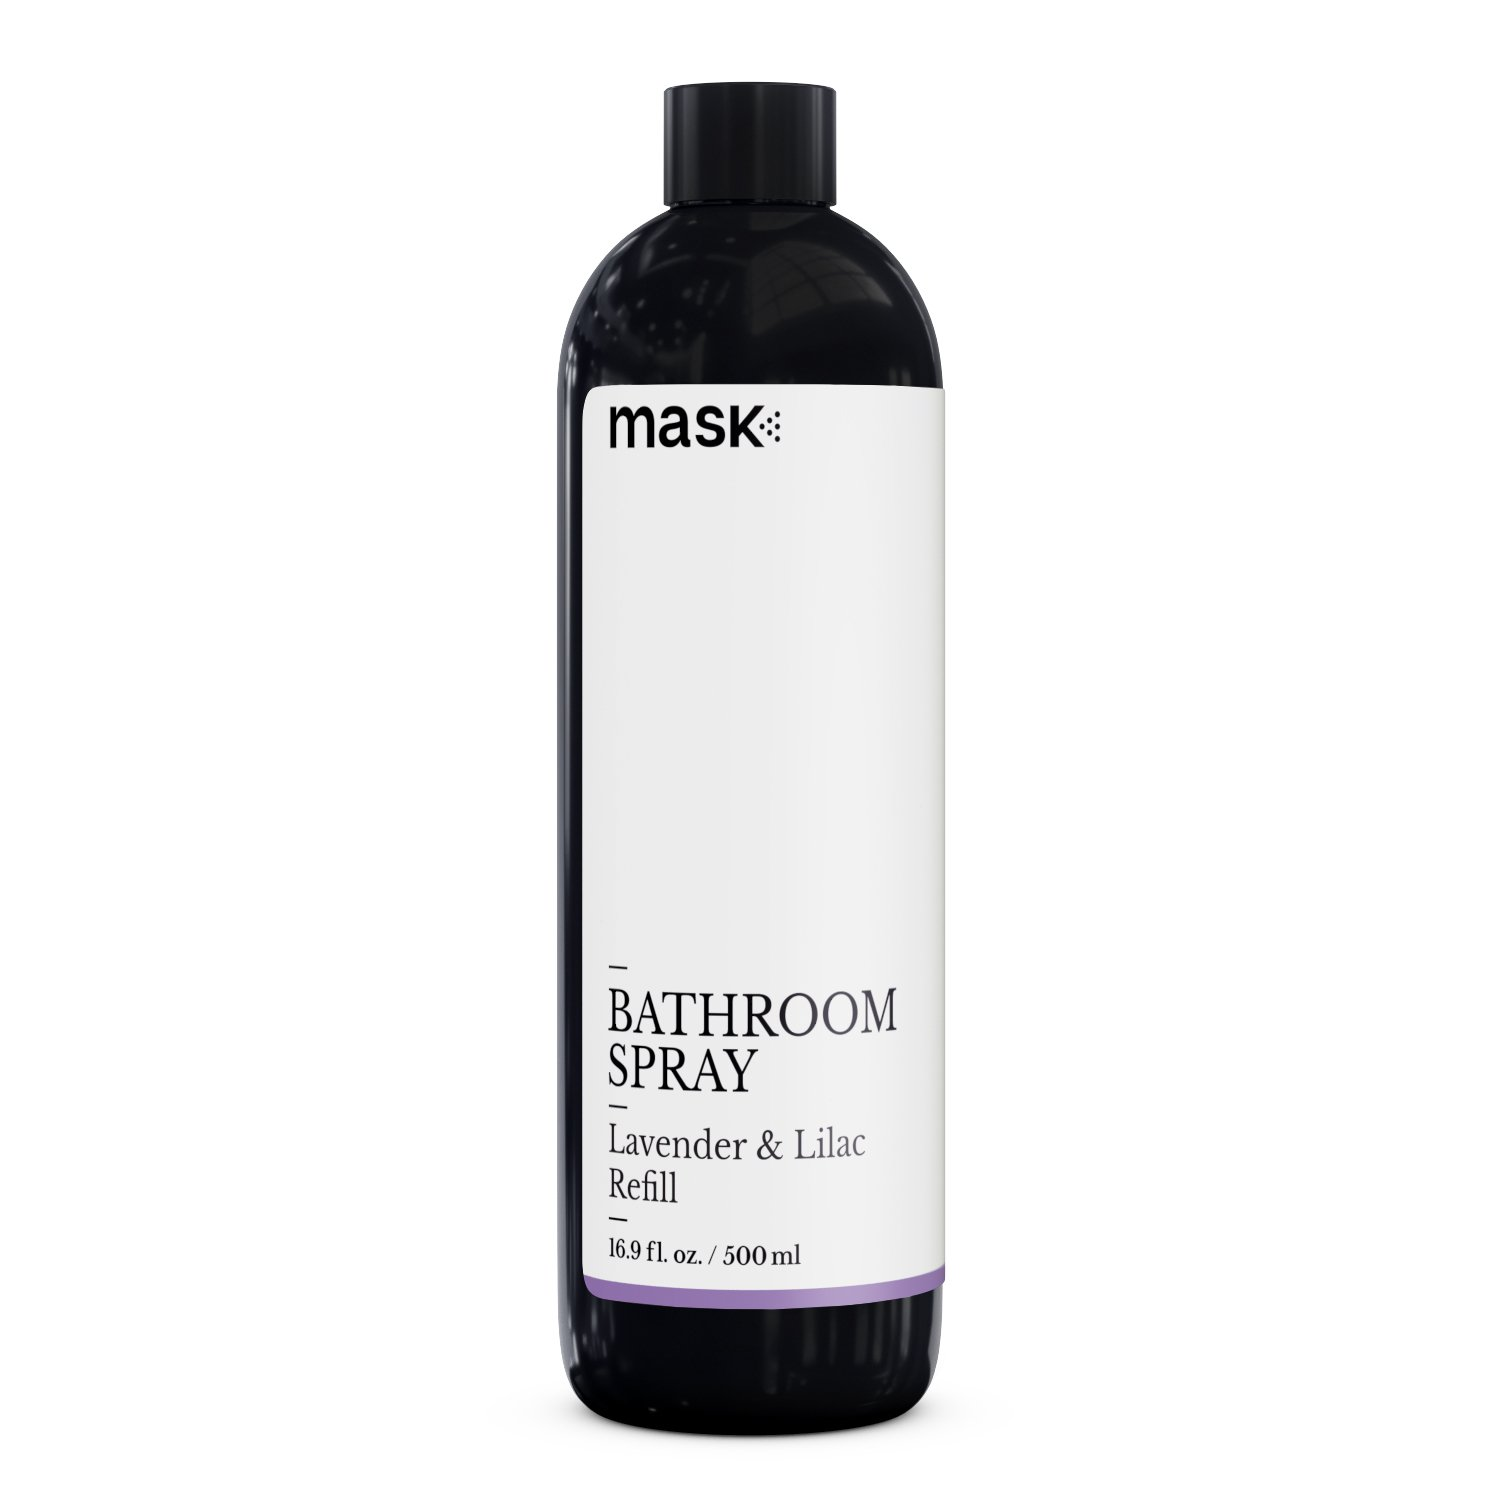 Mask Bathroom Spray Lavender and Lilac 16-Ounce Refill, Toilet Spray, Before You Go Deodorizer, Best Value Air Freshener Poo Poop Spray, Perfect for Travel, Risk Free Offer!